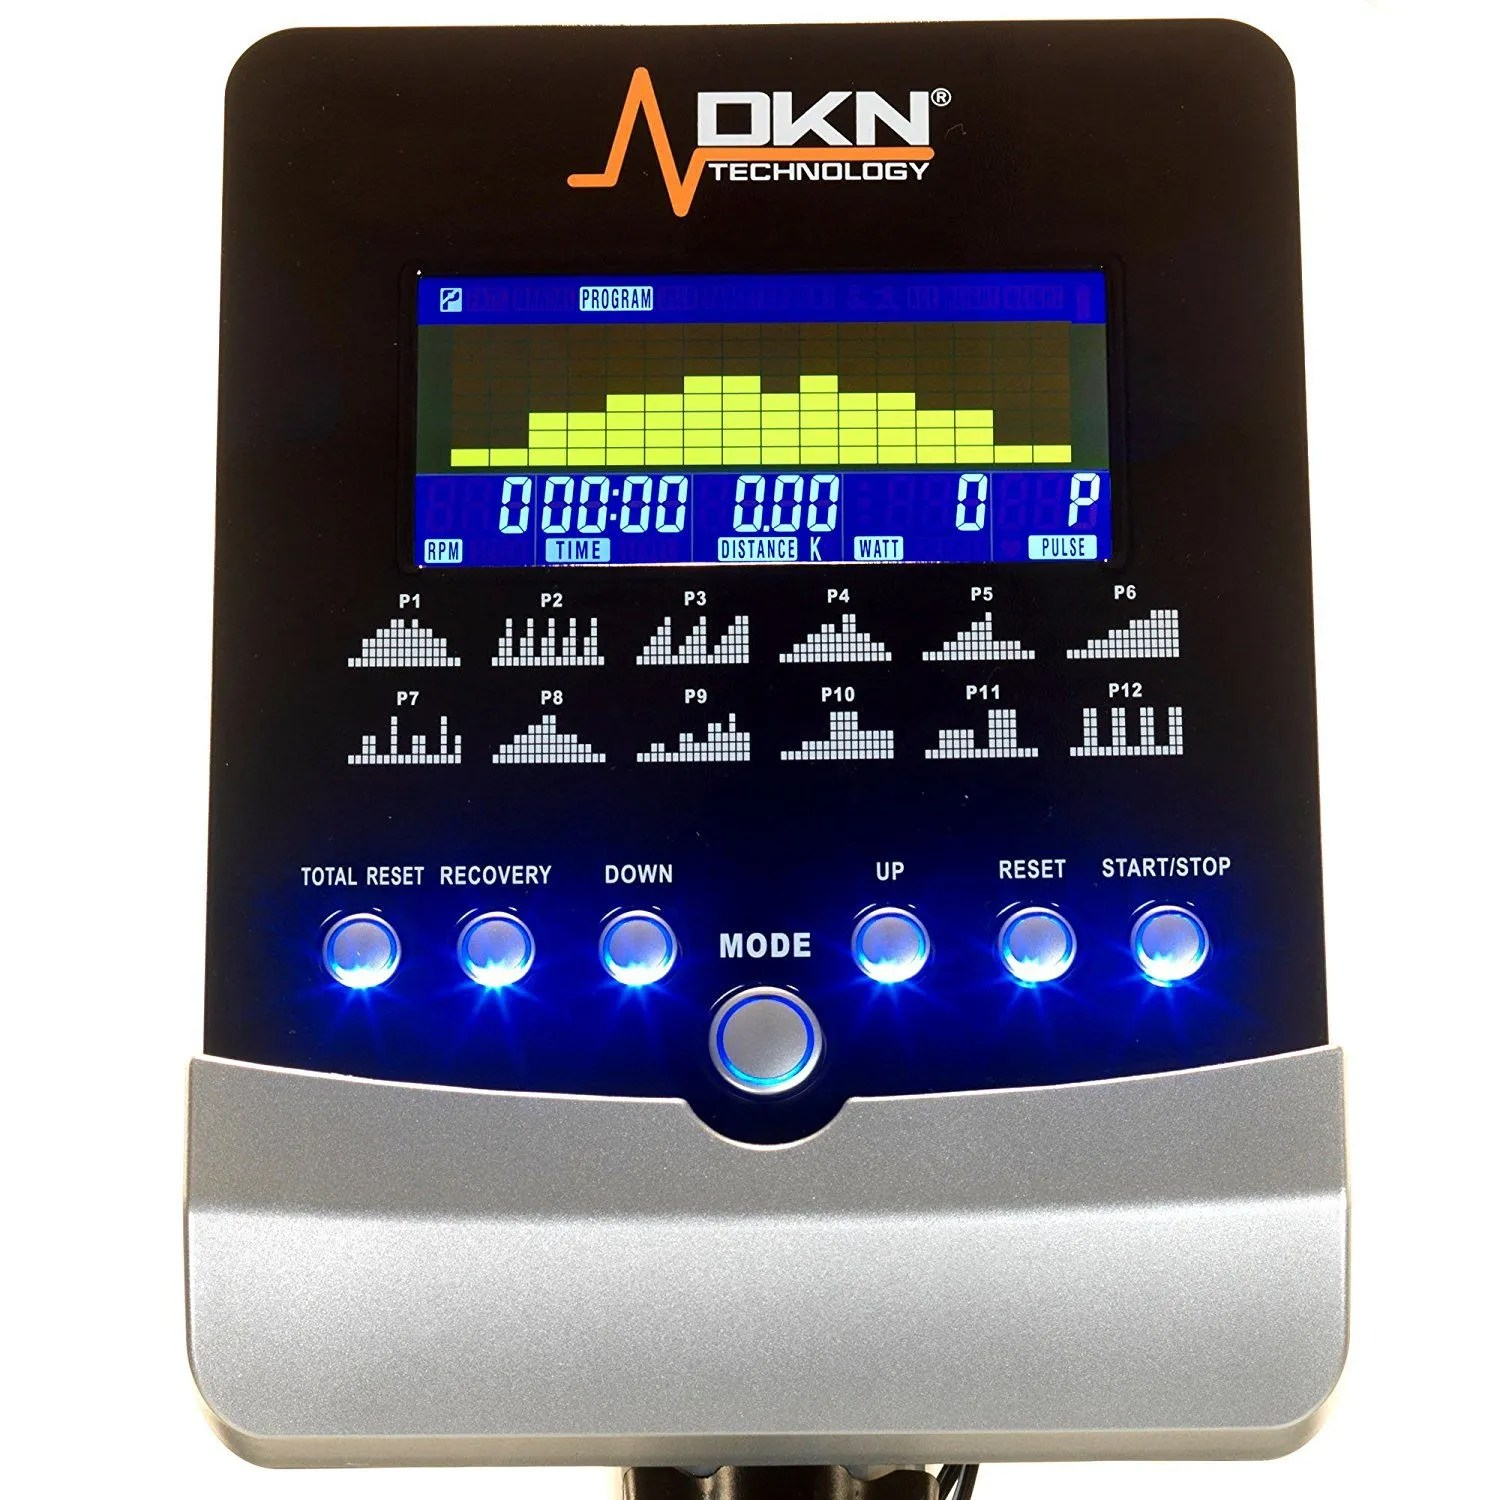 DKN AM-E Exercise Bike Console